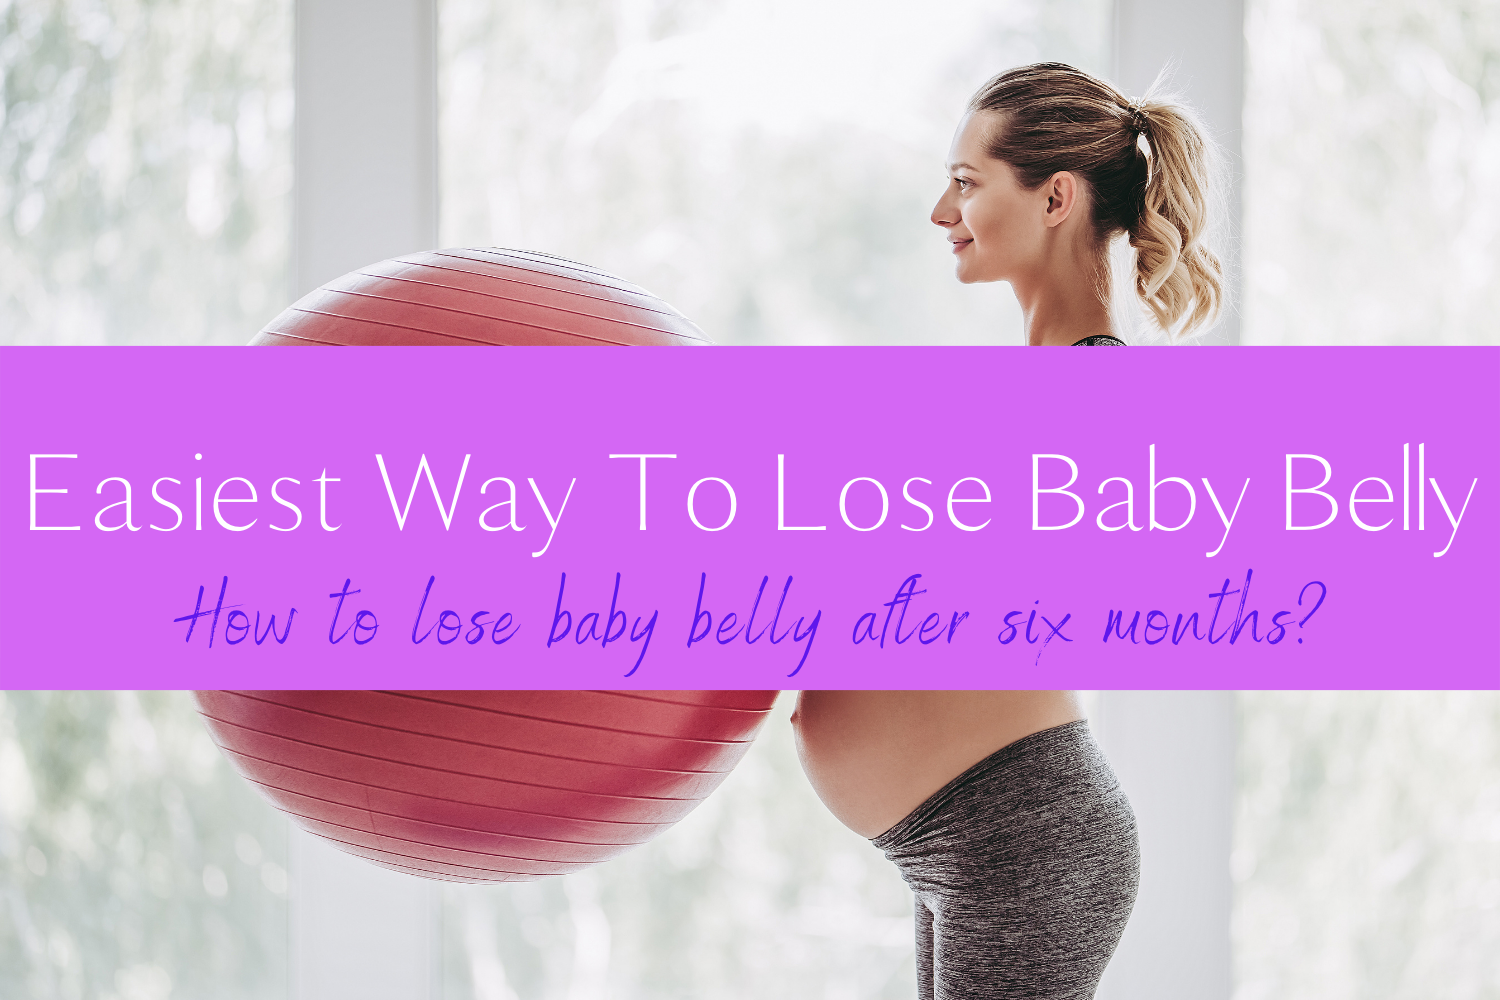 Lose Baby Belly